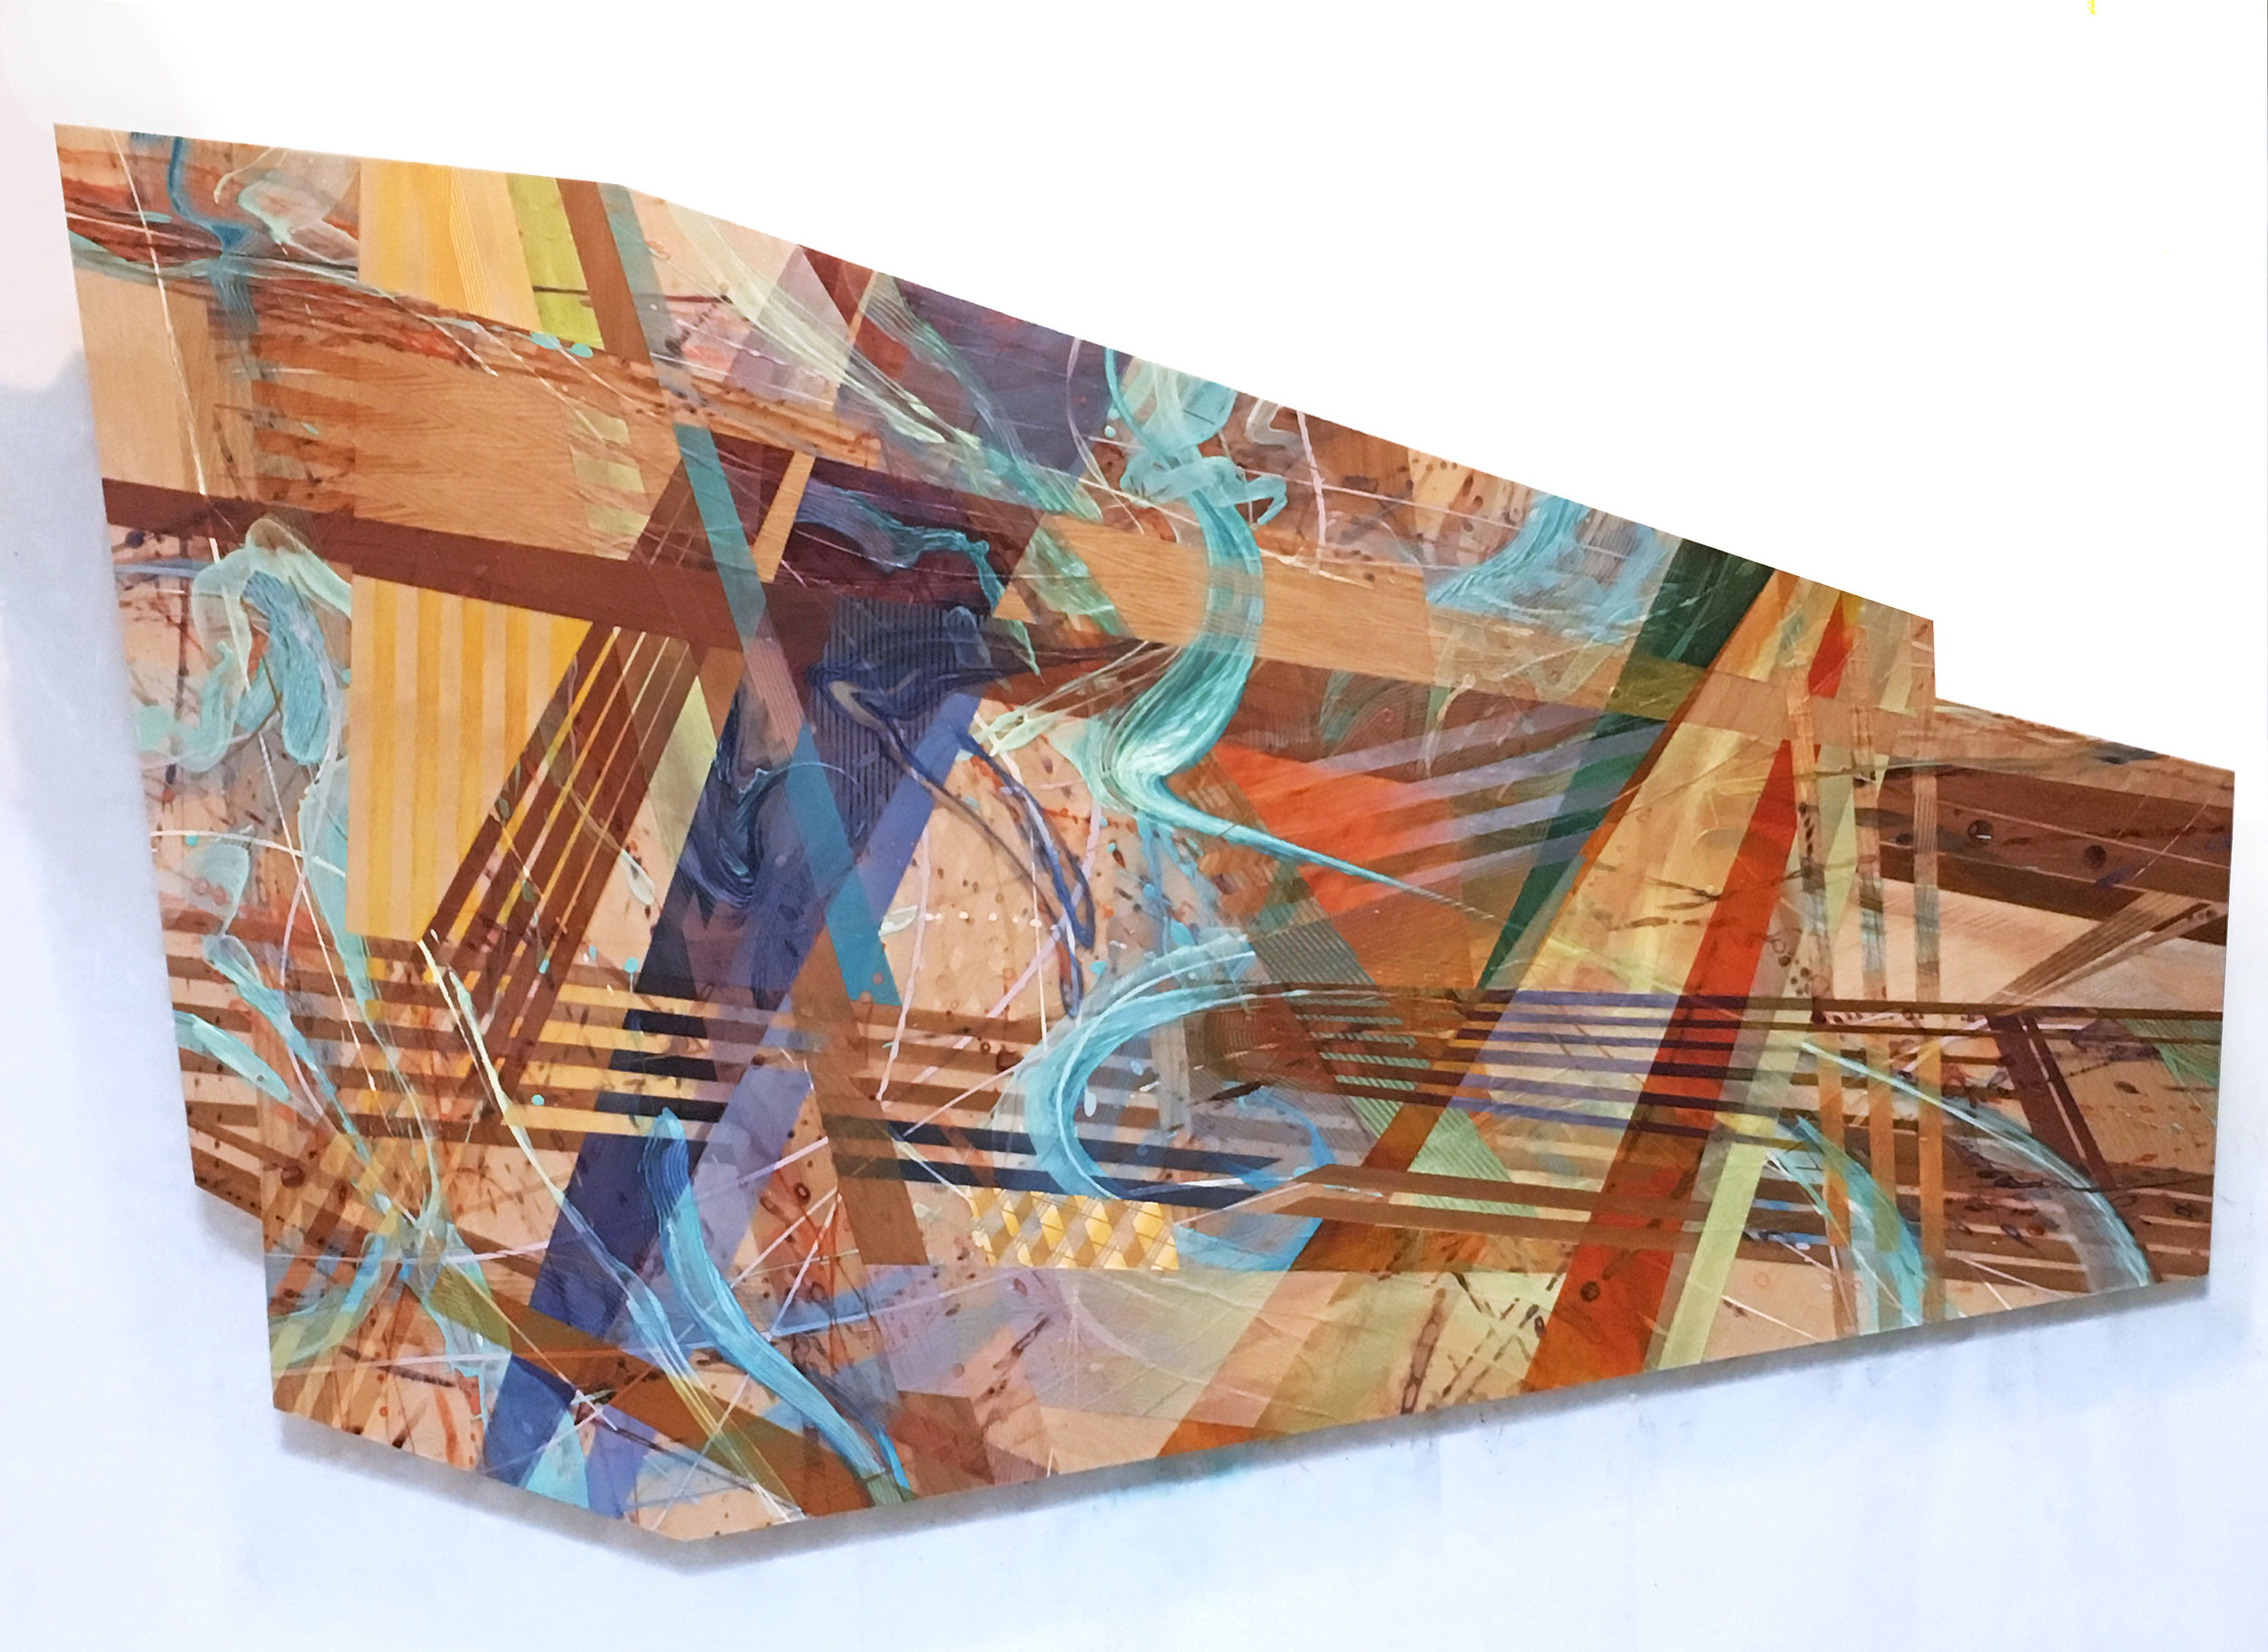 Ben Boothby     Pool Shimmers and Dry Heat    2018  Oil and acrylic on veneer inlay  Signed by the artist,  verso   53 x 80 x 5 inches